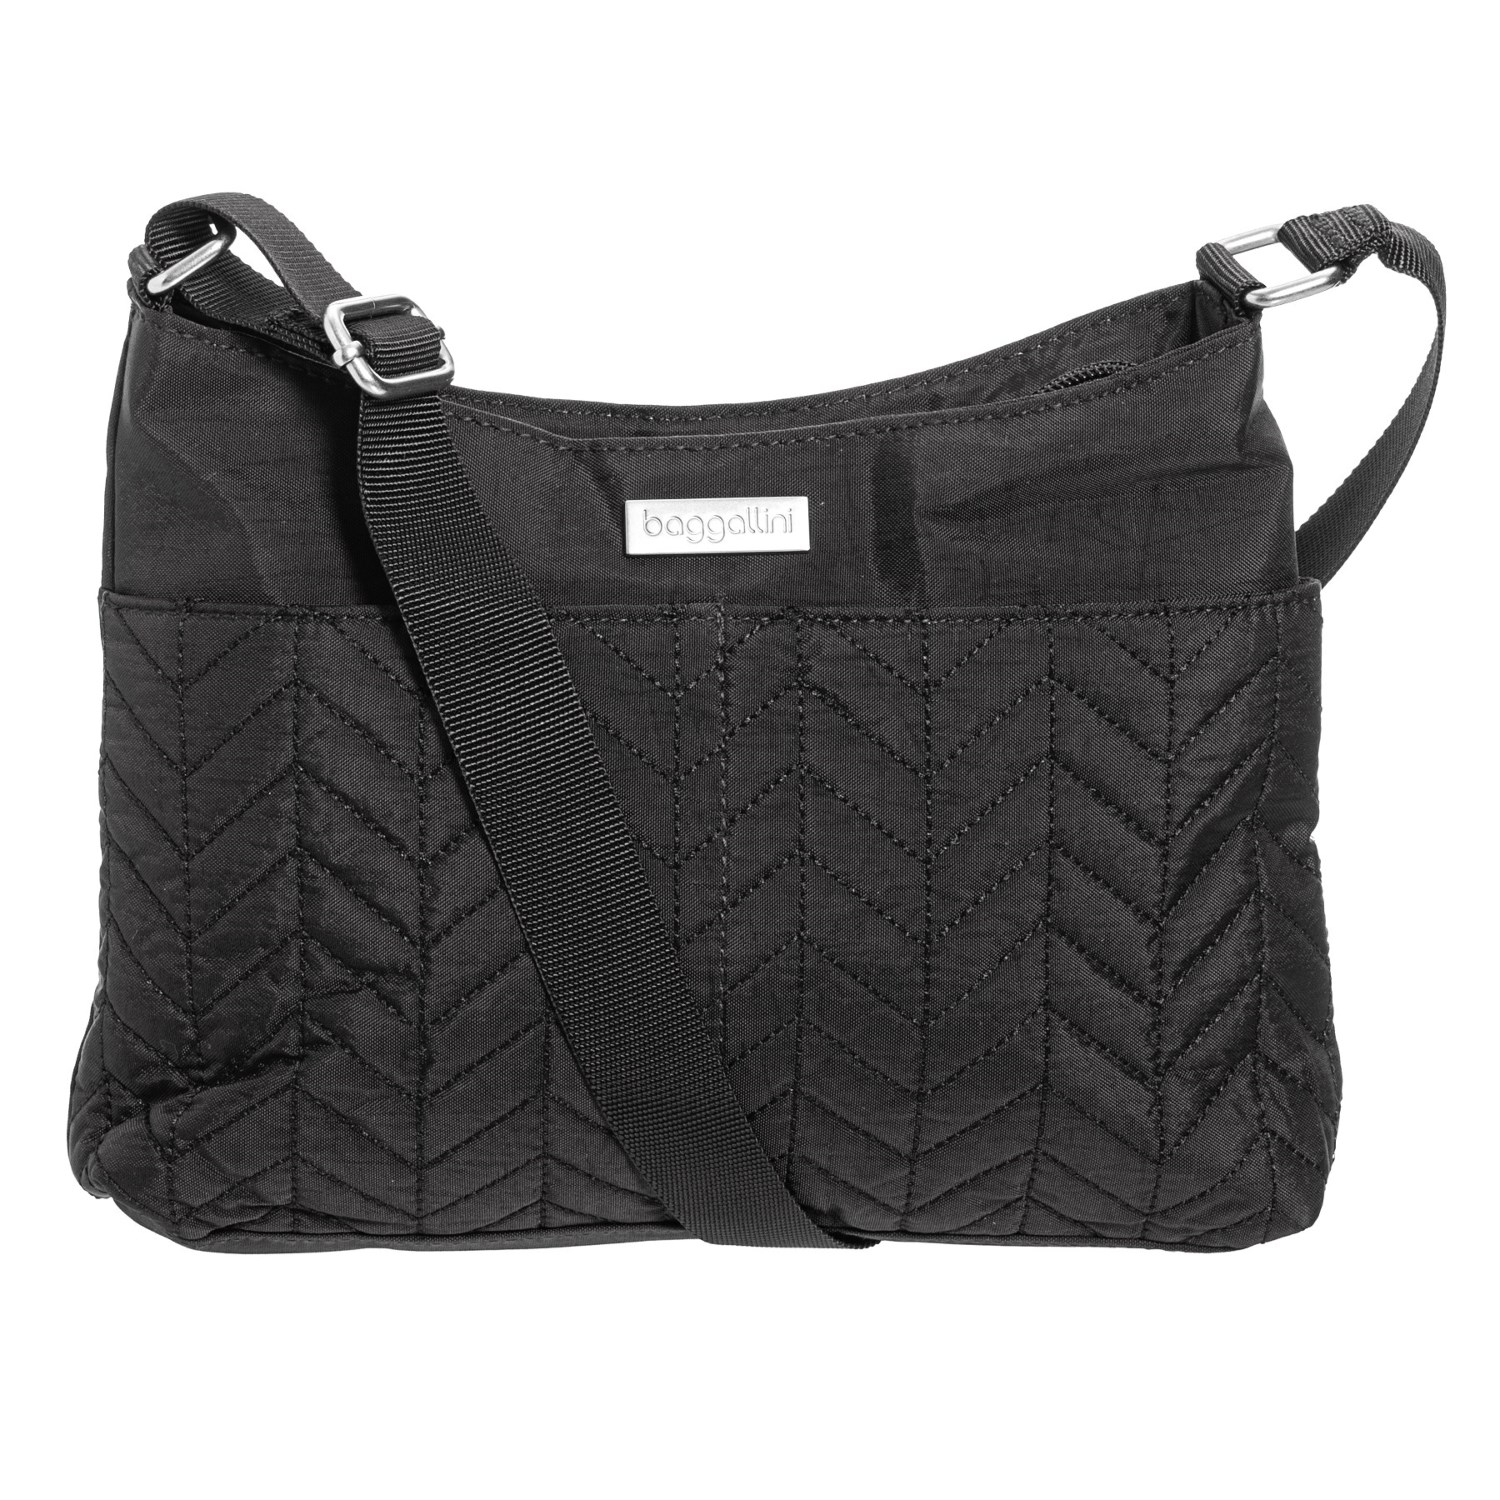 0fd6448ff0 baggallini Chevron Quilted Crossbody Bag (For Women) in Black ...